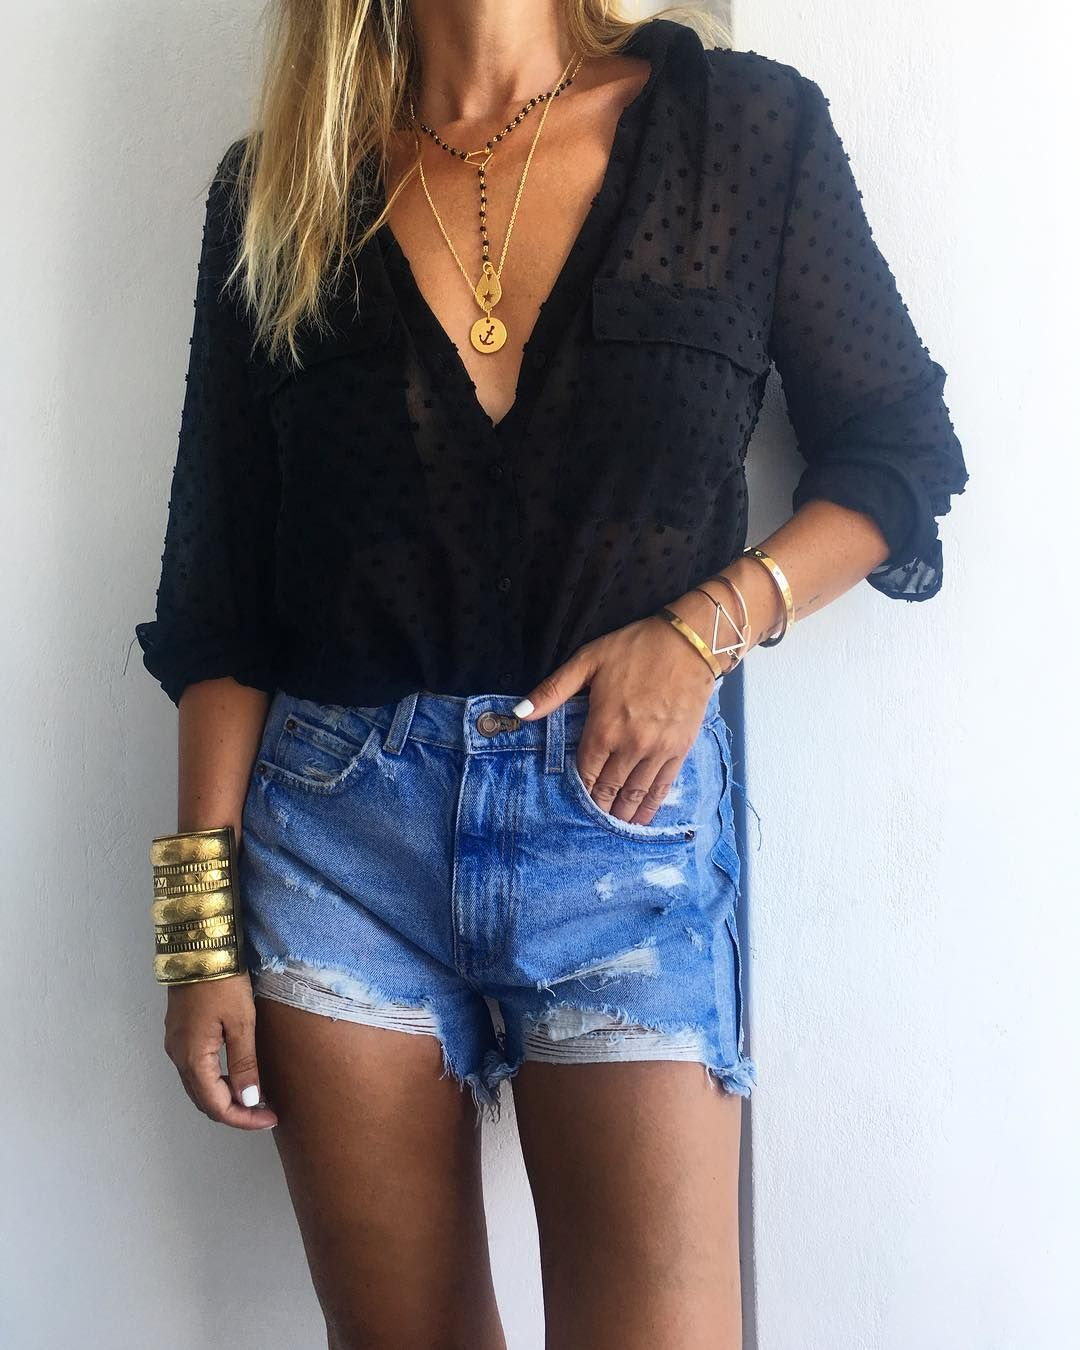 94fbcf832813 32 Outstanding Fashion Trends To Rock Your Summer Style - Luxe Fashion New  Trends